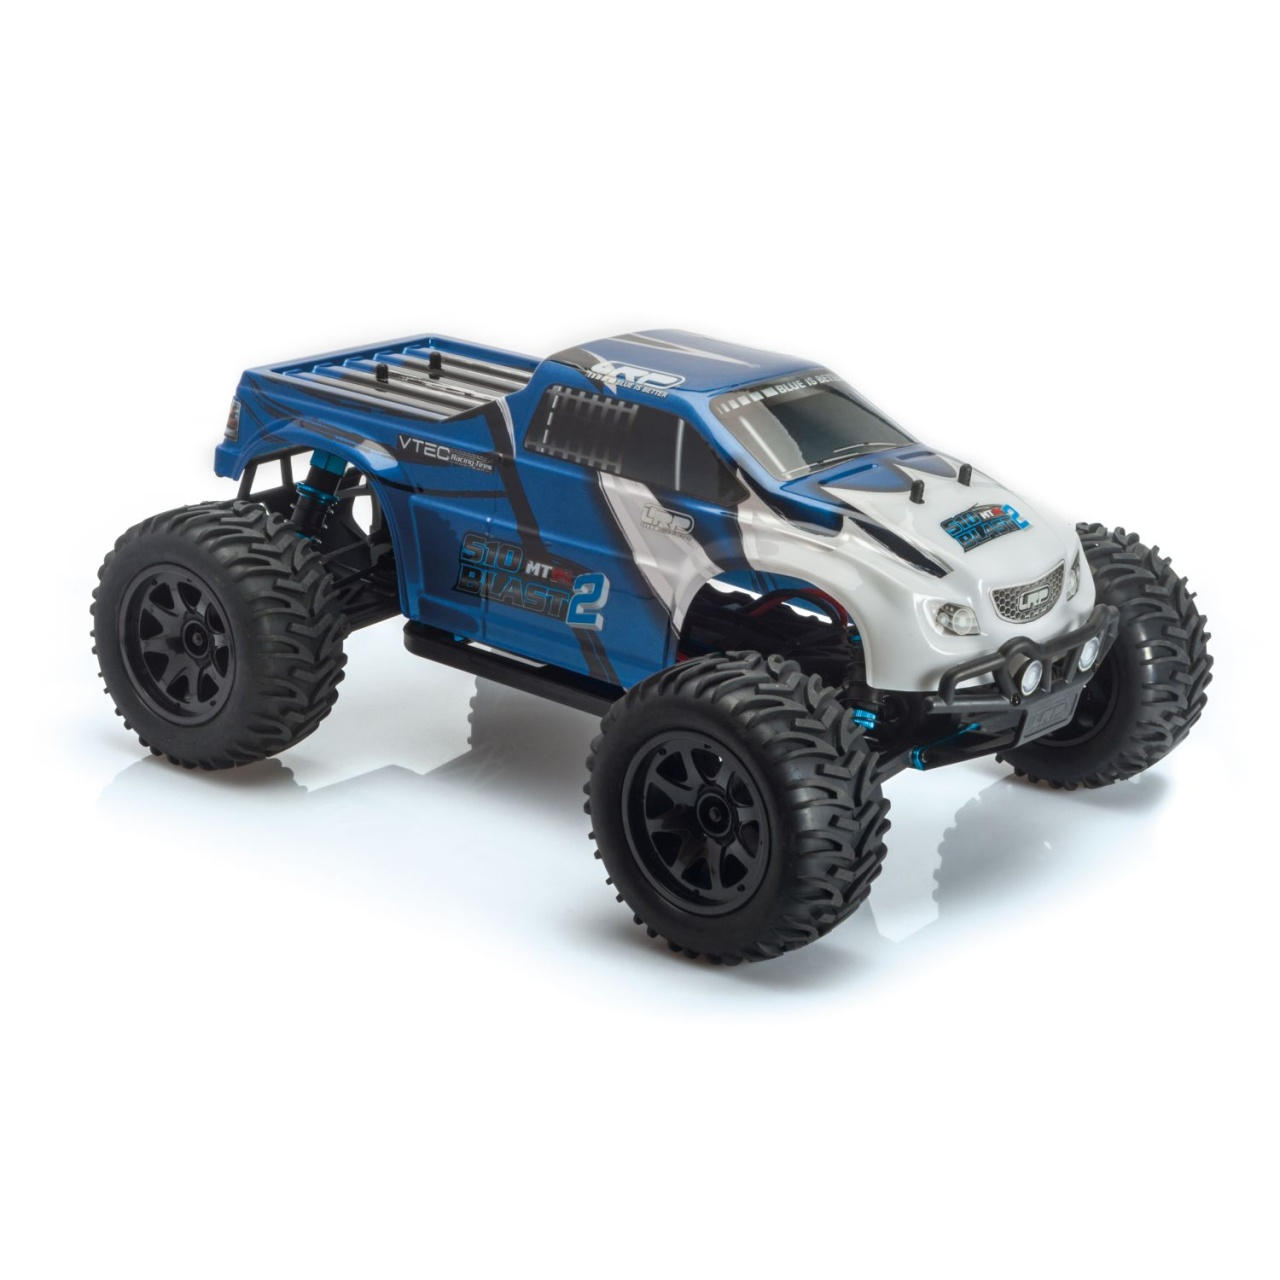 LRP S10 Blast MT 2 Brushless RTR